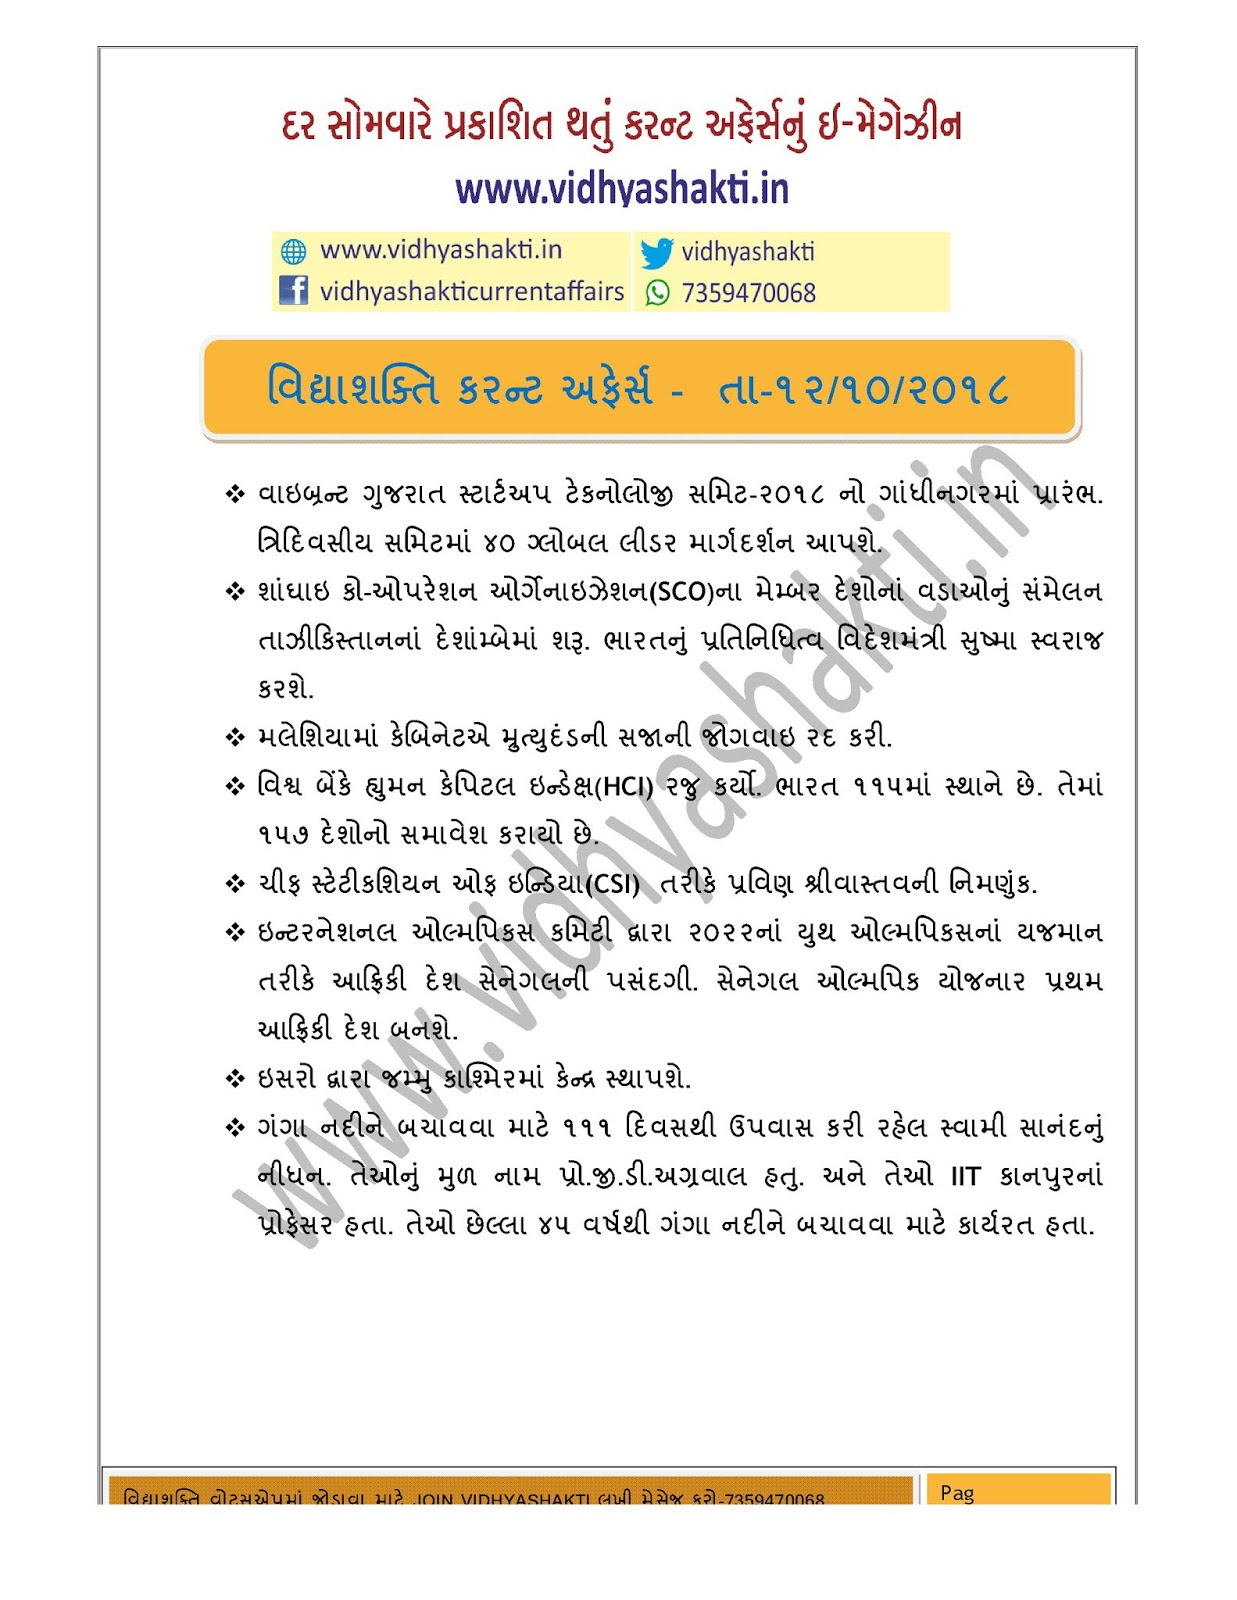 Daily gujarati current affairs vidhyashakti -12 oct-2018